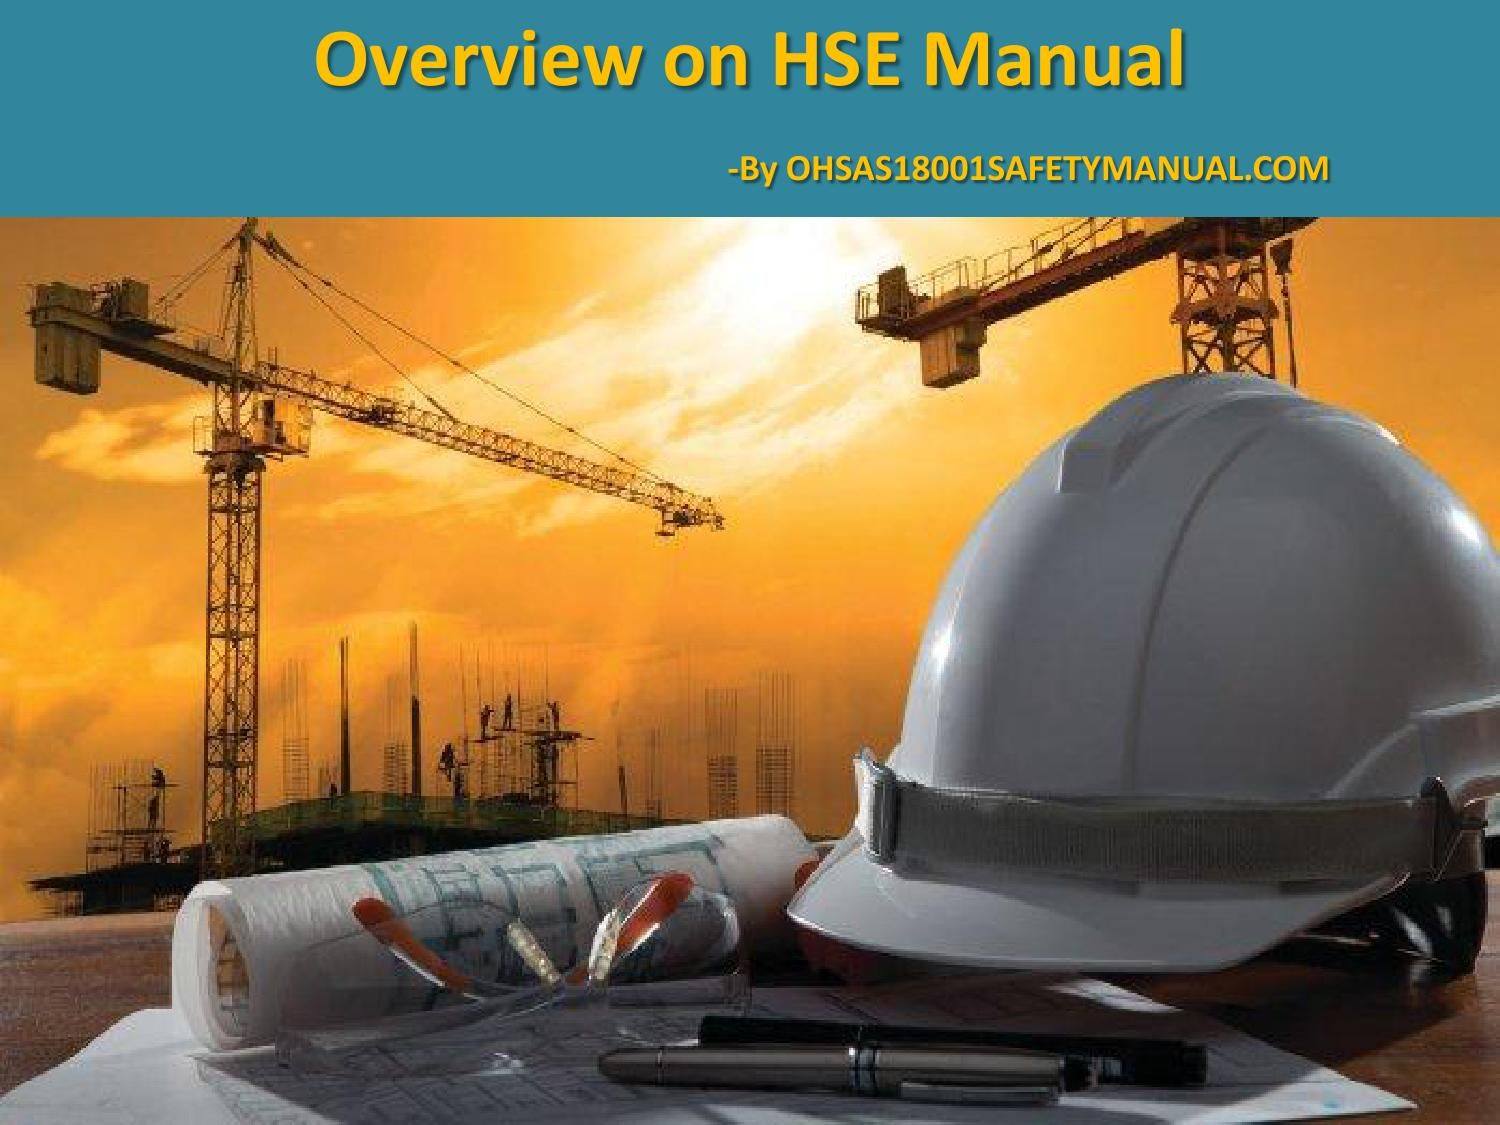 PPT Presentation on HSE Manual | OHSAS 18001 Certification